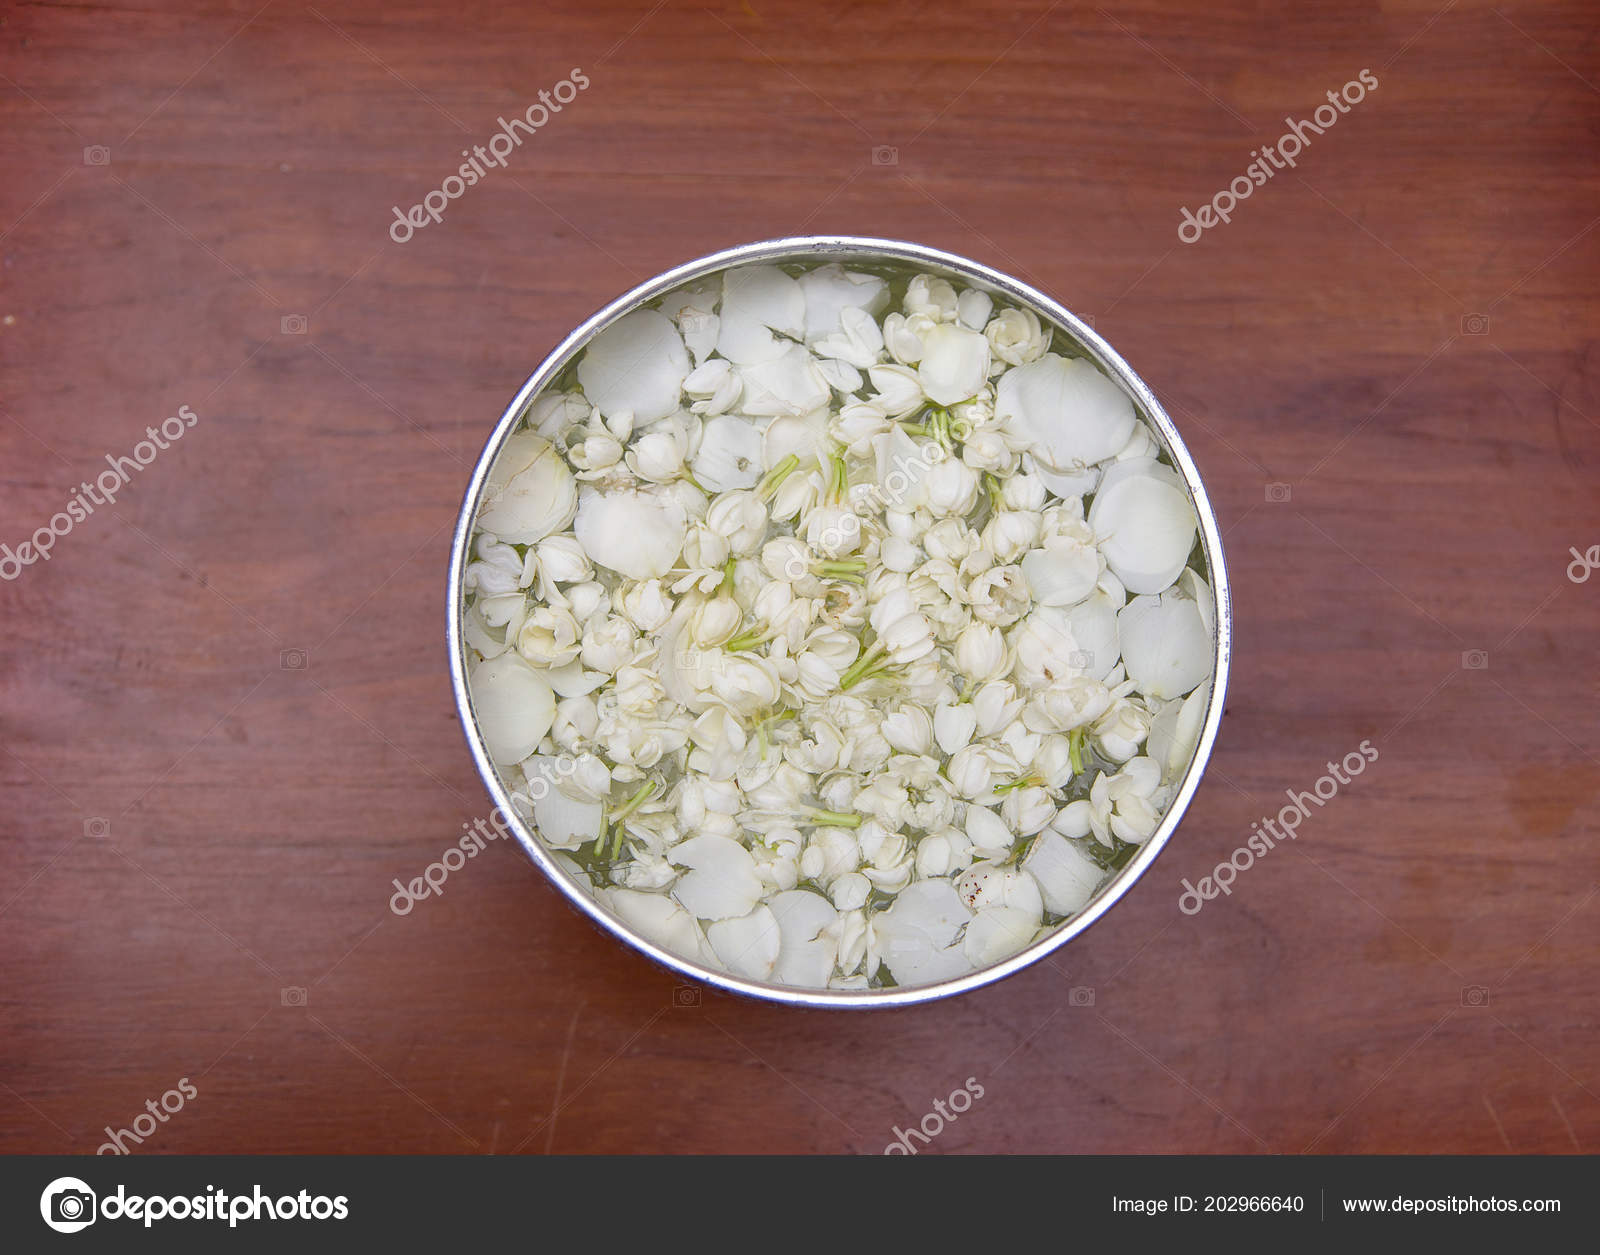 Aroma Water Jasmine Flower Silver Bolw Wood Table Background Top